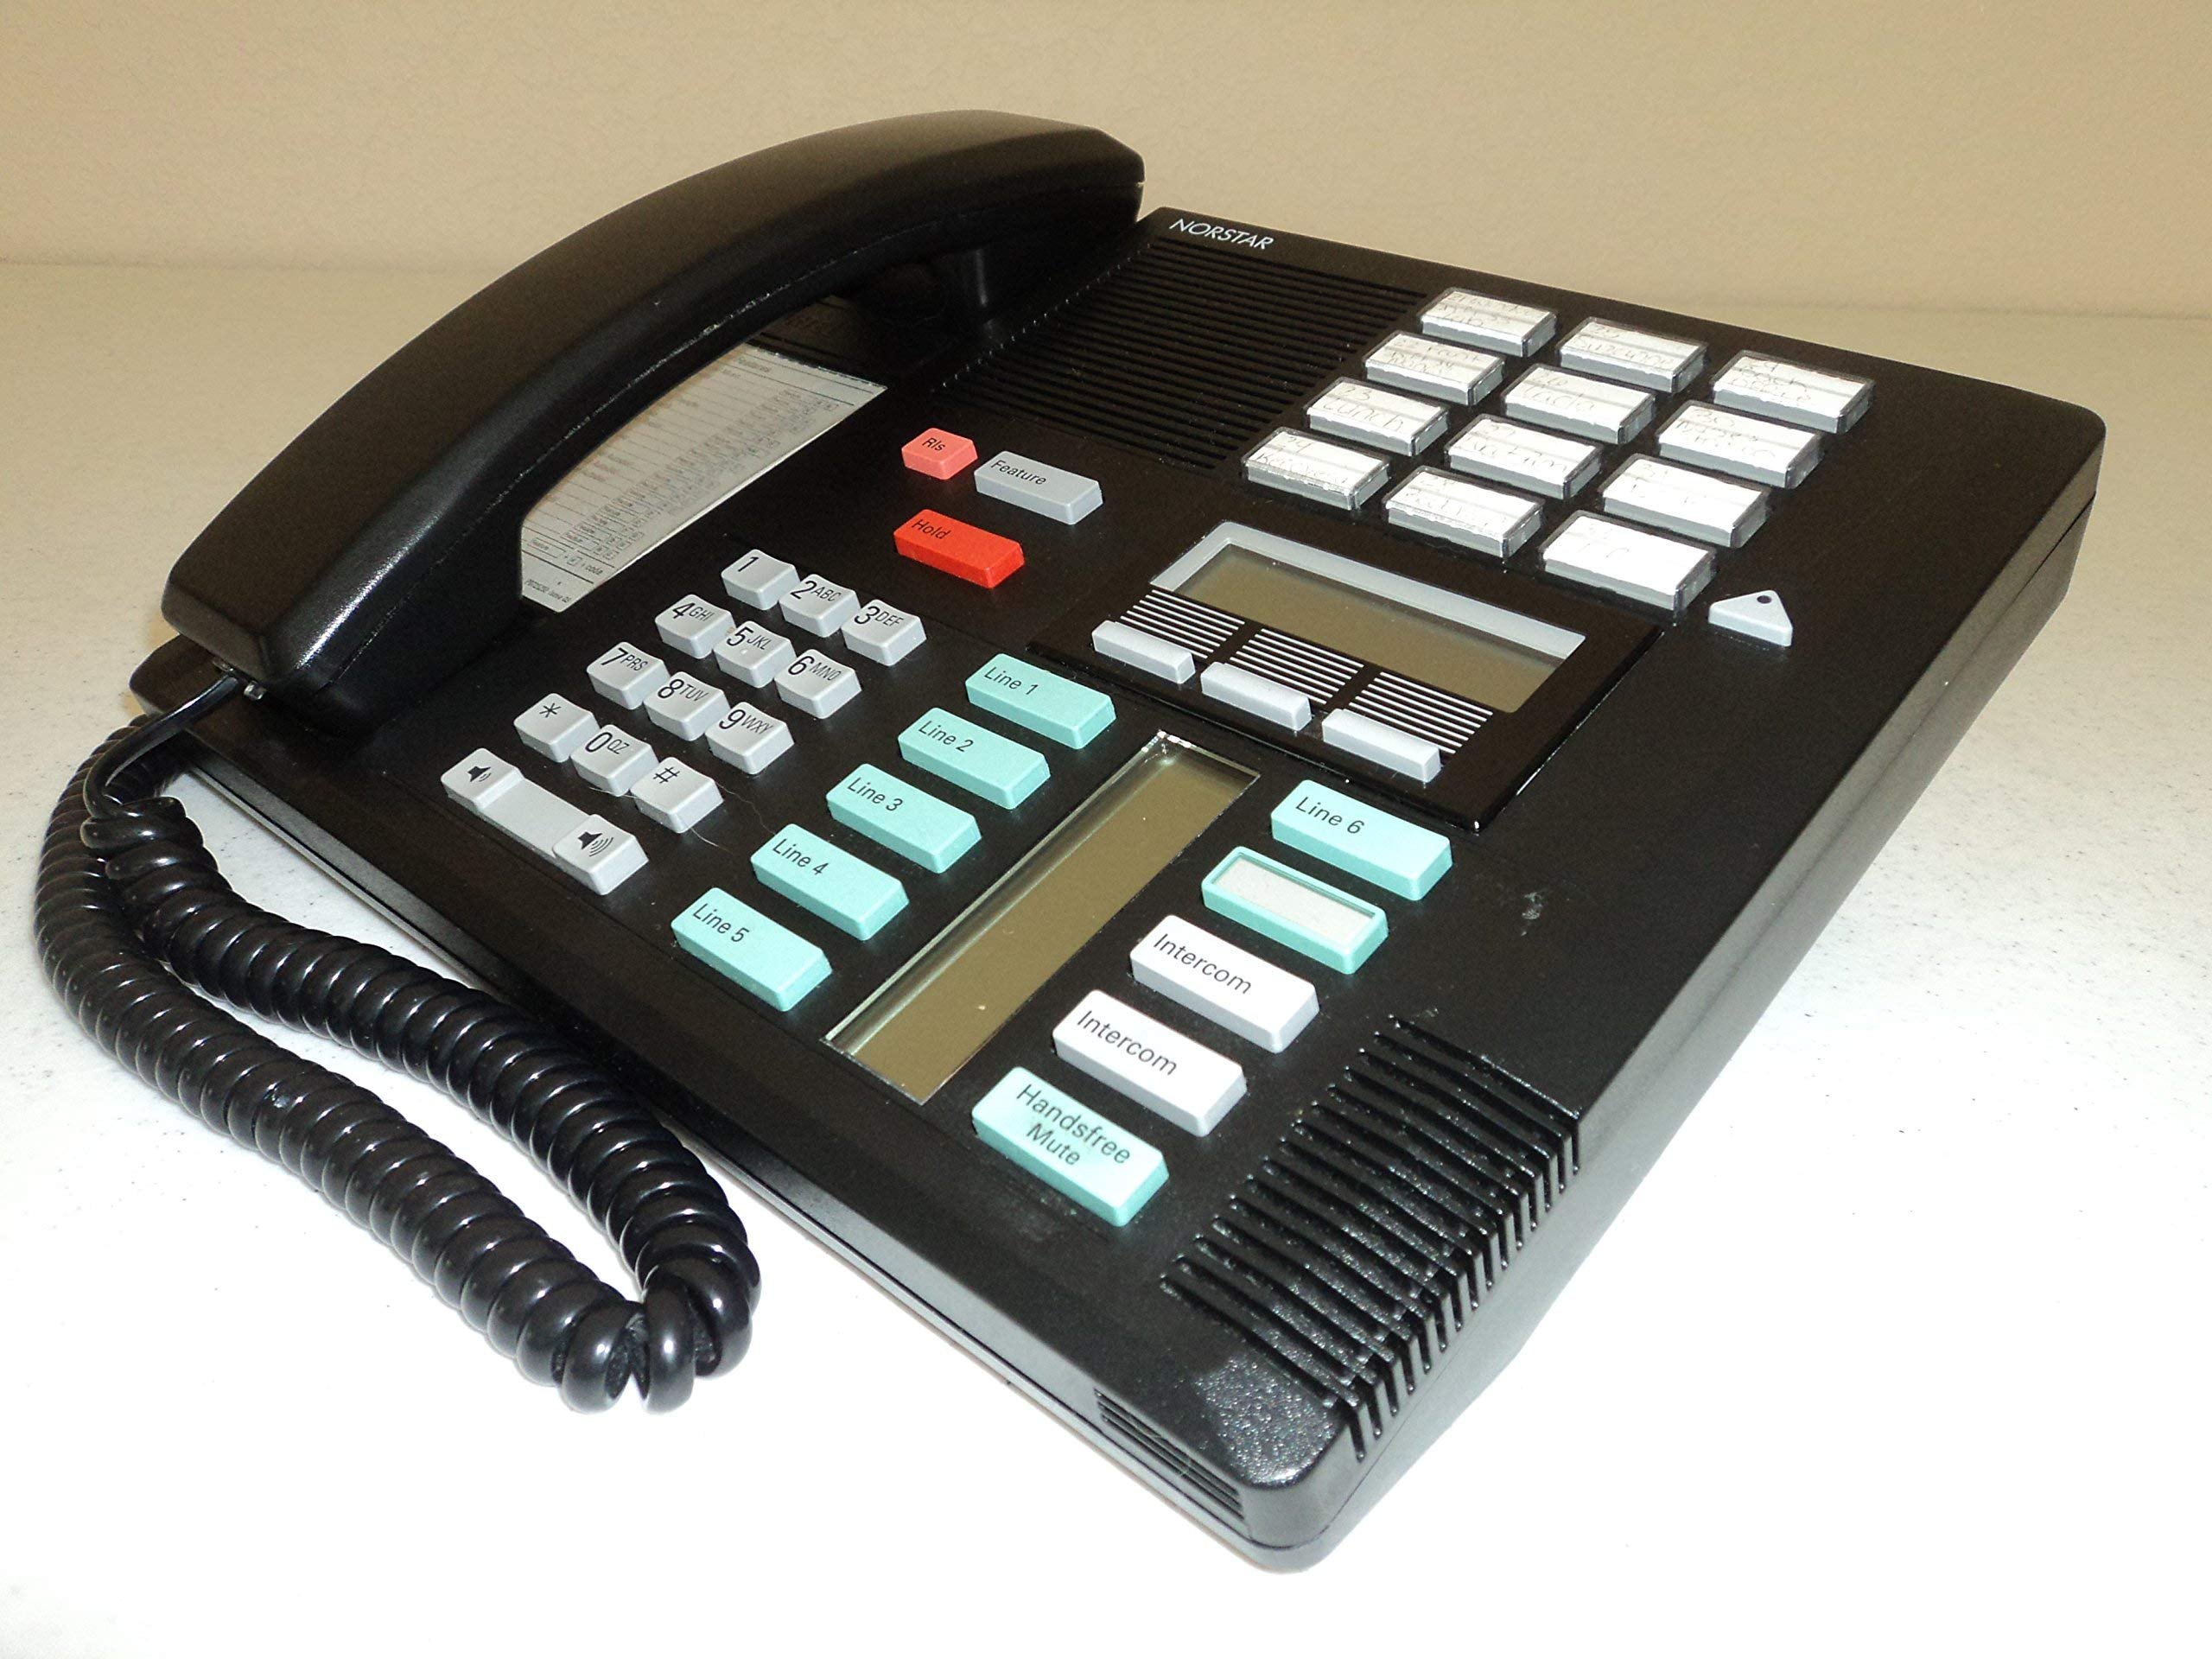 Nortel/Meridian M7310 PBX Black 4-7 Line Telephone with Speaker (Norstar NT8B20) (Renewed) by Norstar